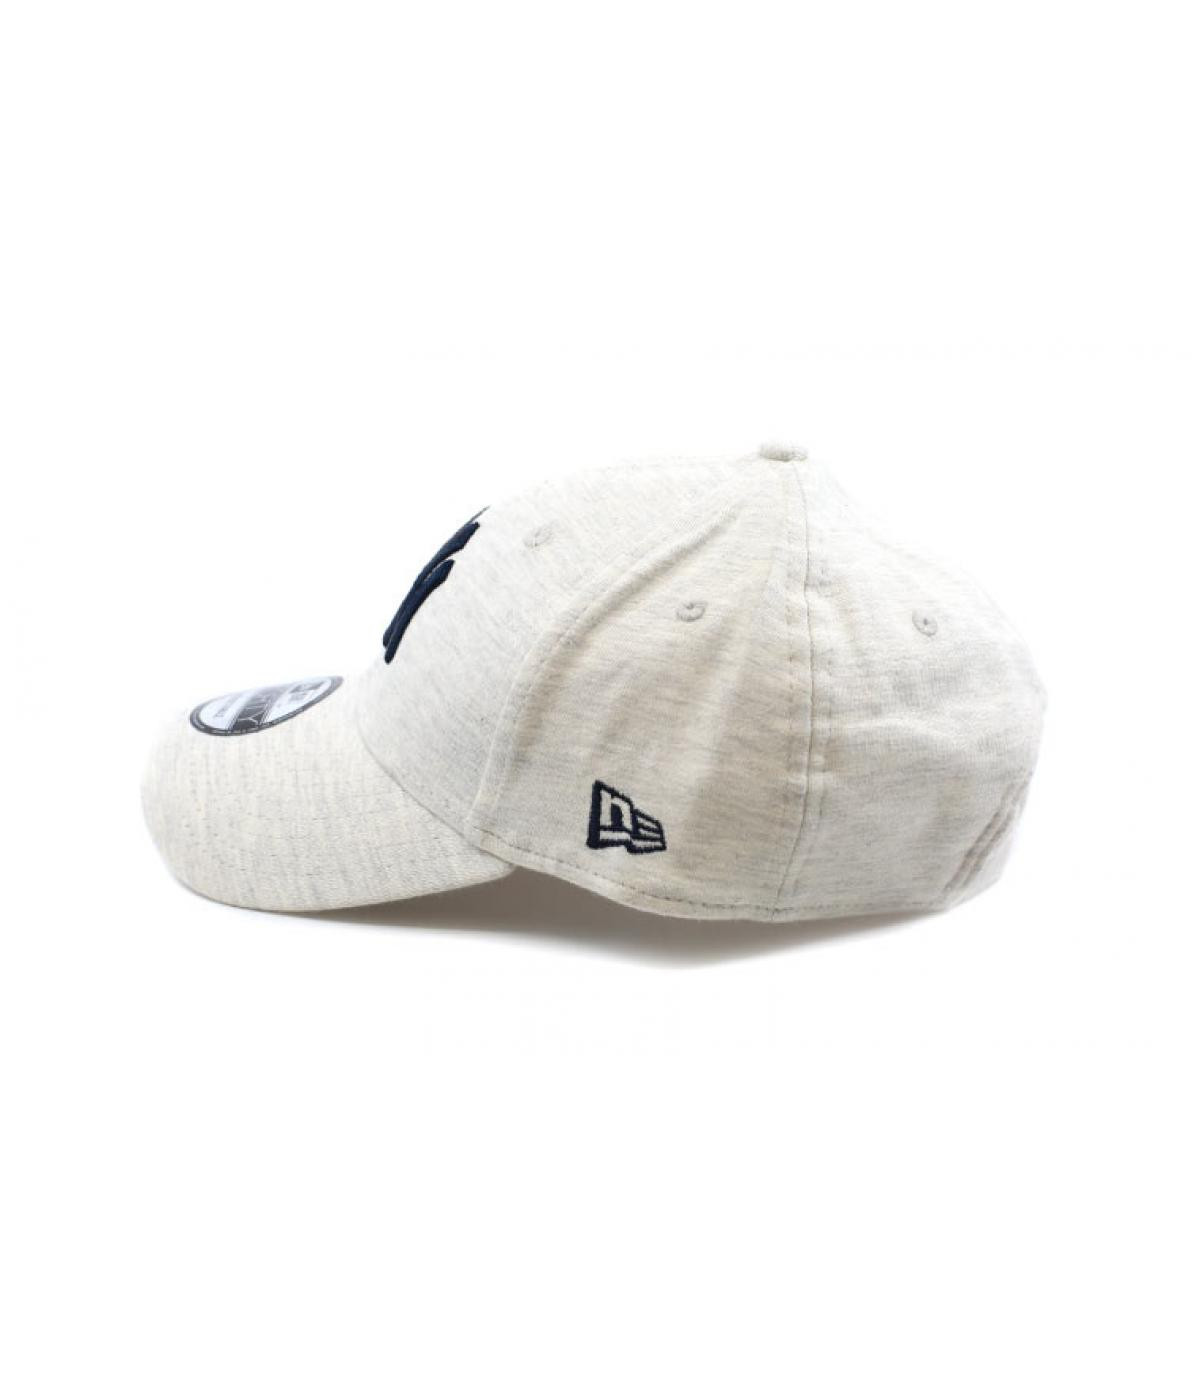 Détails Casquette Jersey Ess NY 940 white gray navy - image 4